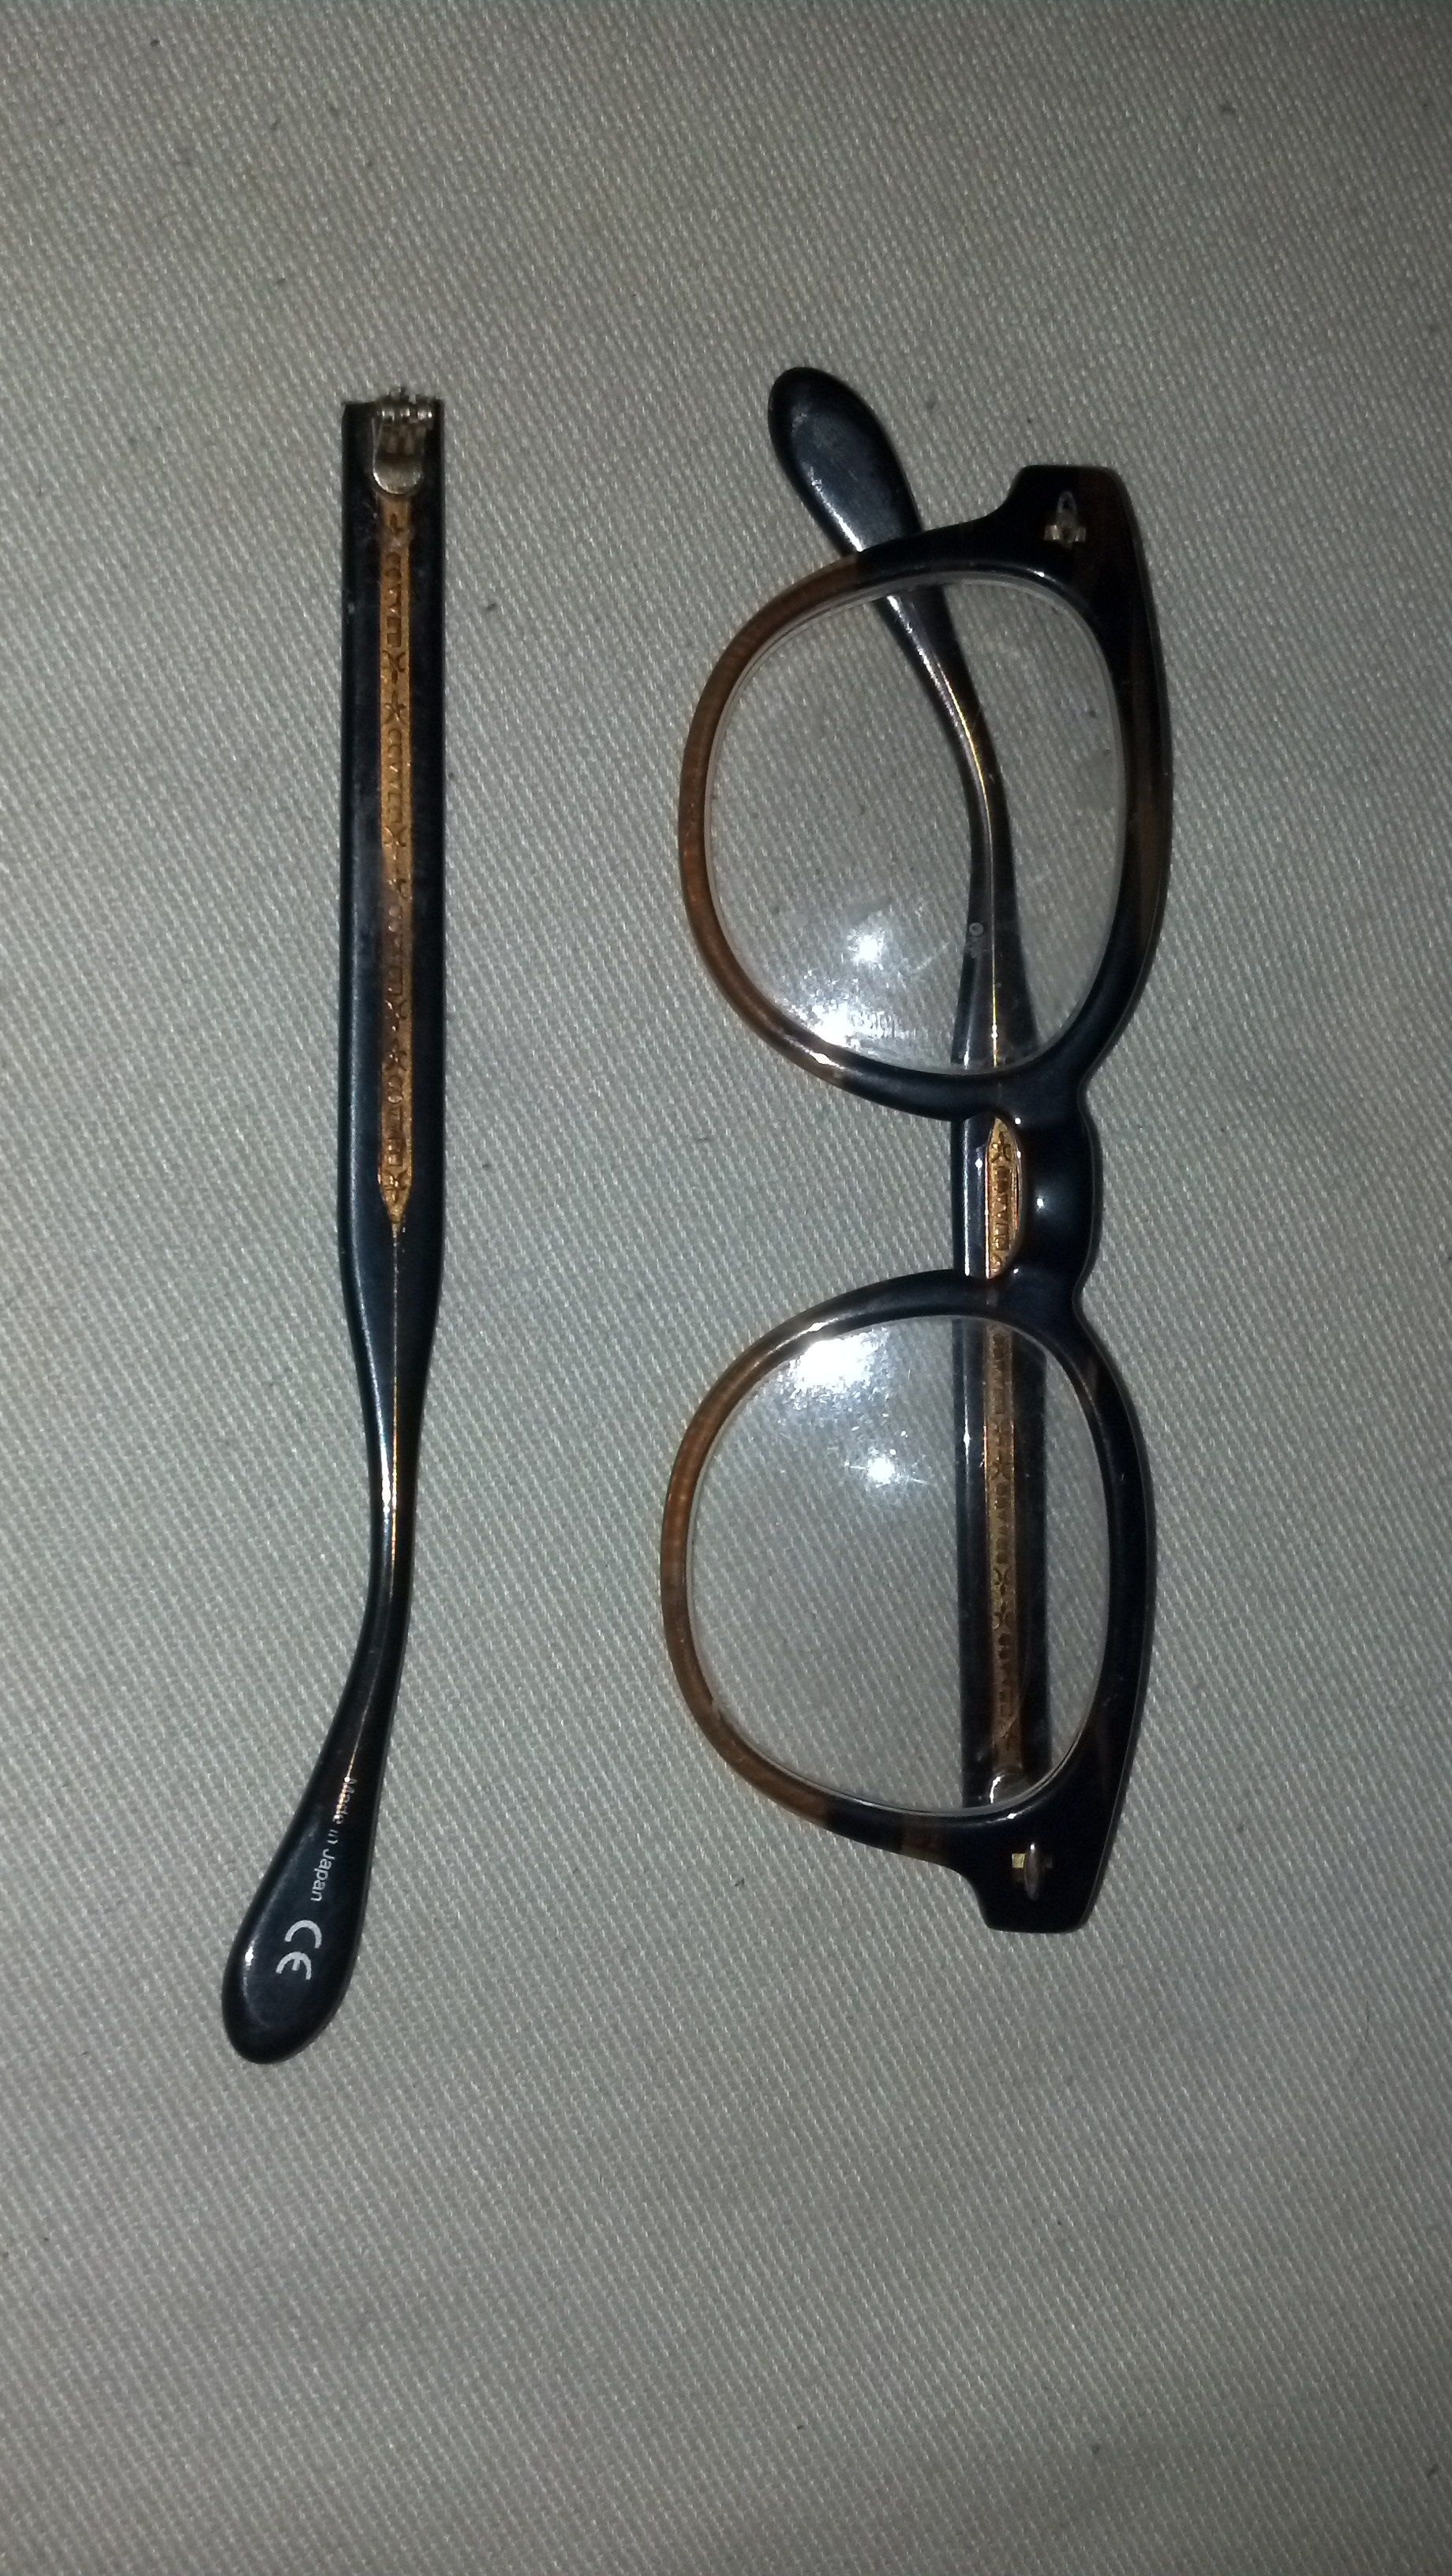 before shot of plastic eyeglasses with broken temple arm click on the link to see